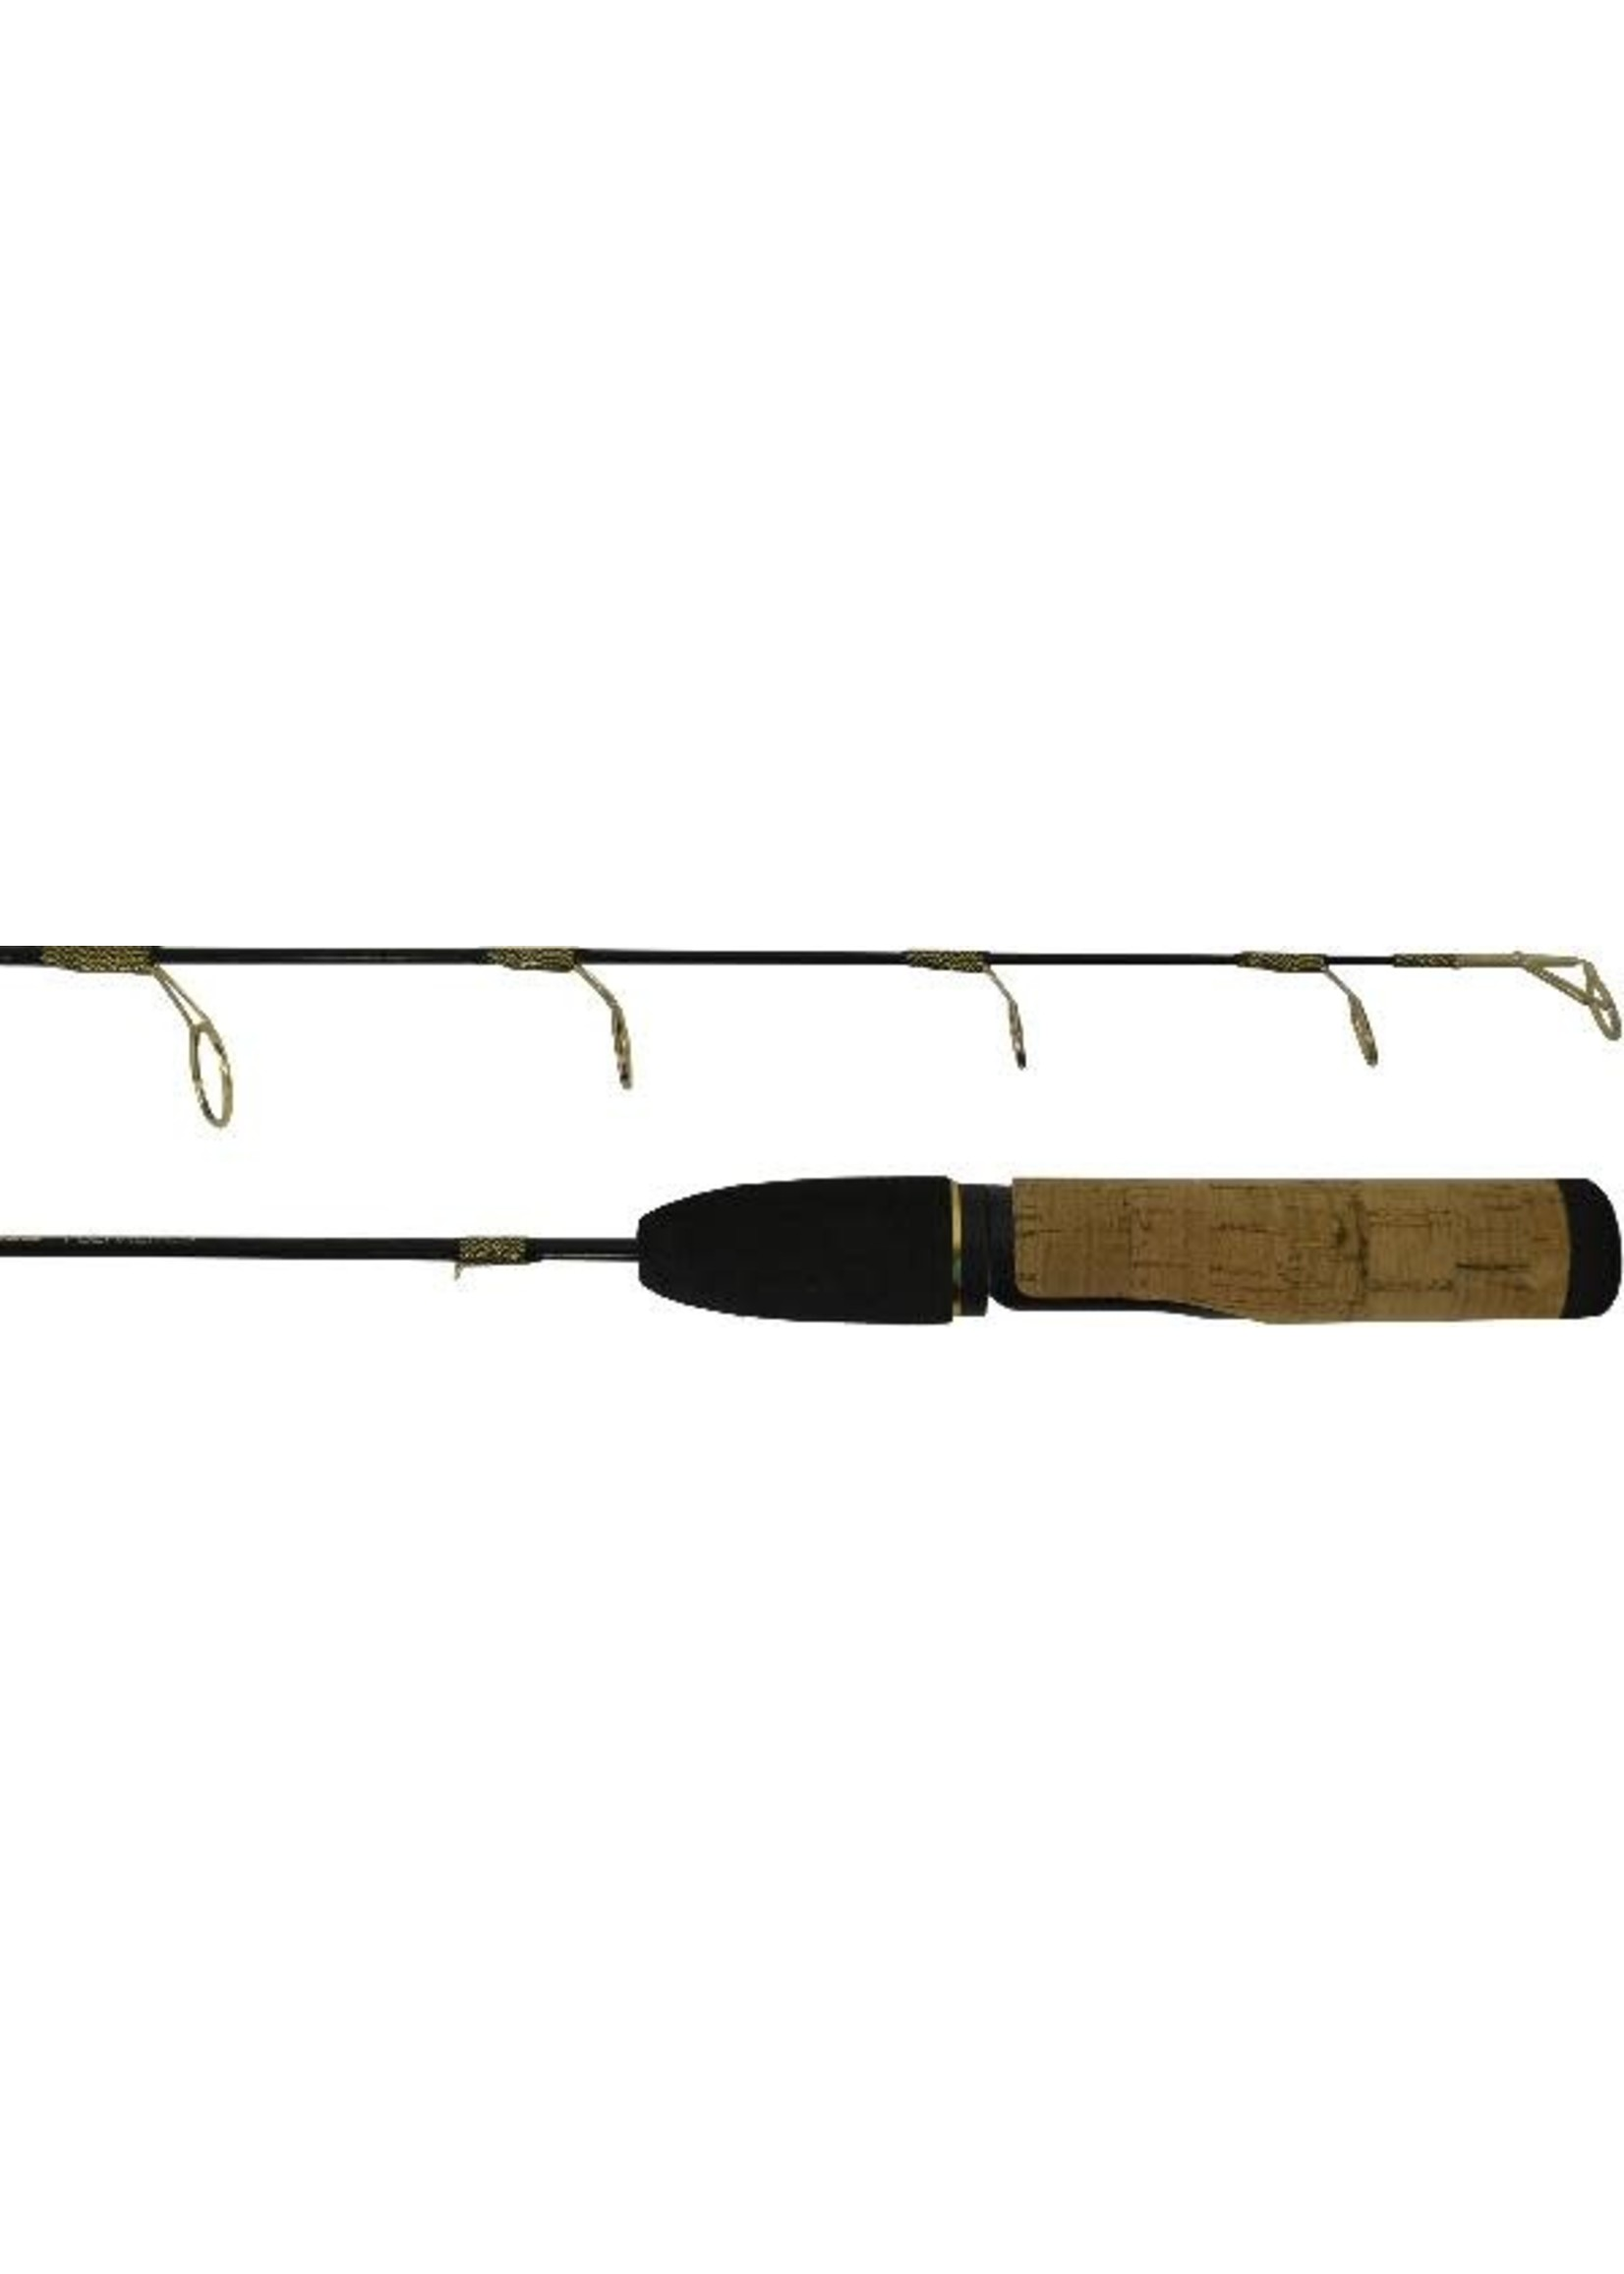 POLAR LITE 34 TROUT/PIKE SYSTEM - 96% GRAPHITE - SPINNING - CORK